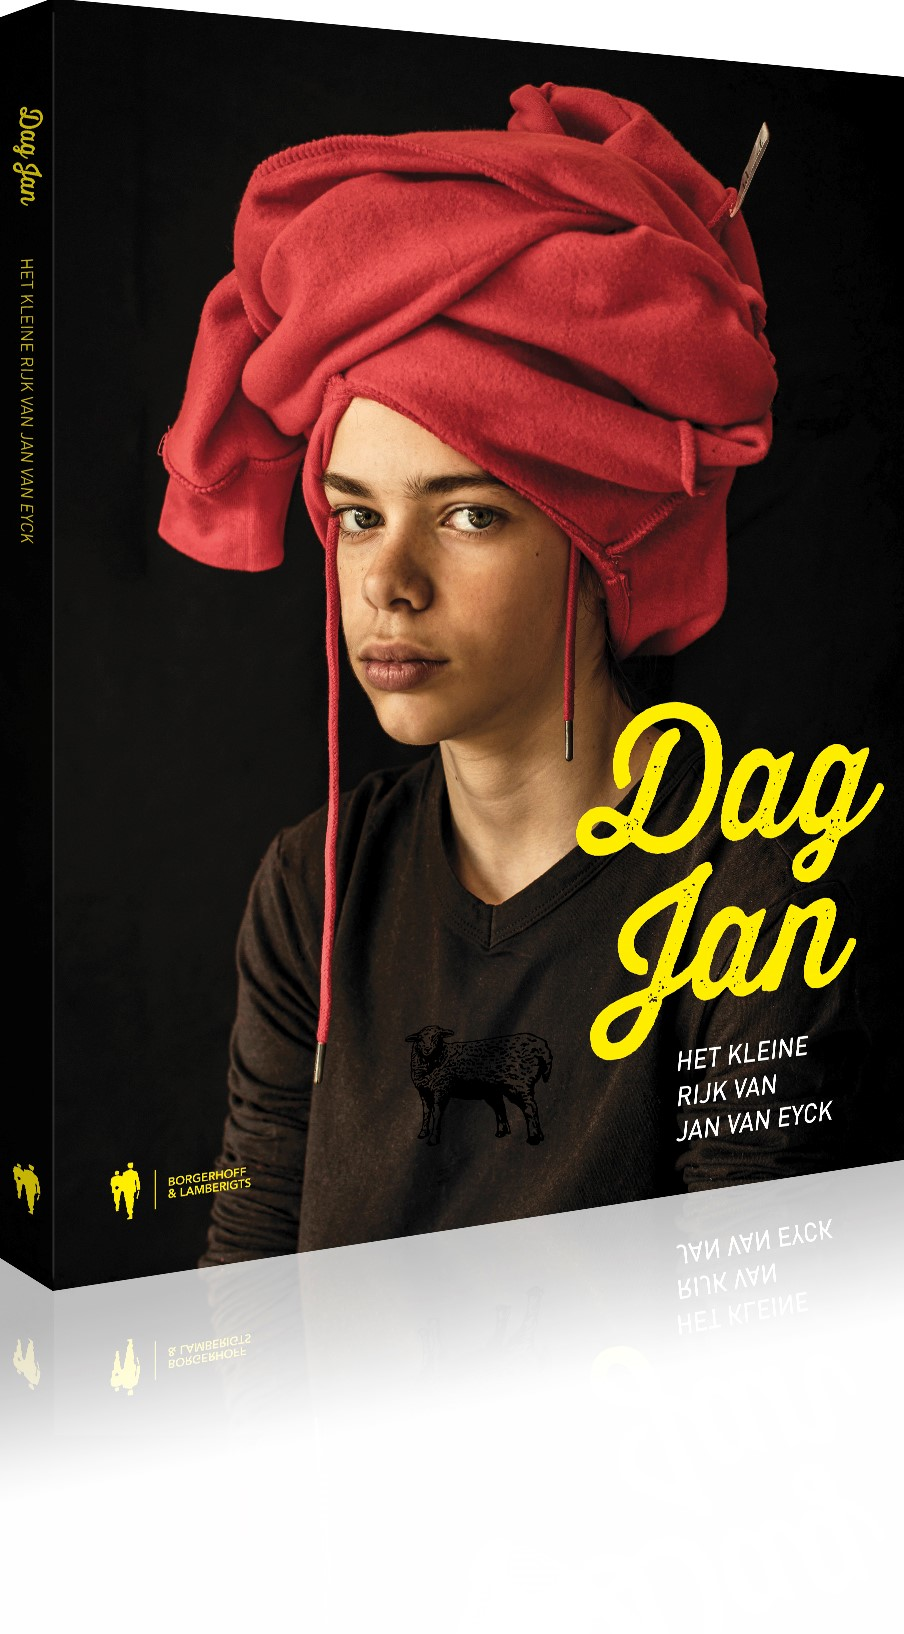 Cover of the book Dag Jan, Het Kleine rijk by Jan van Eyck